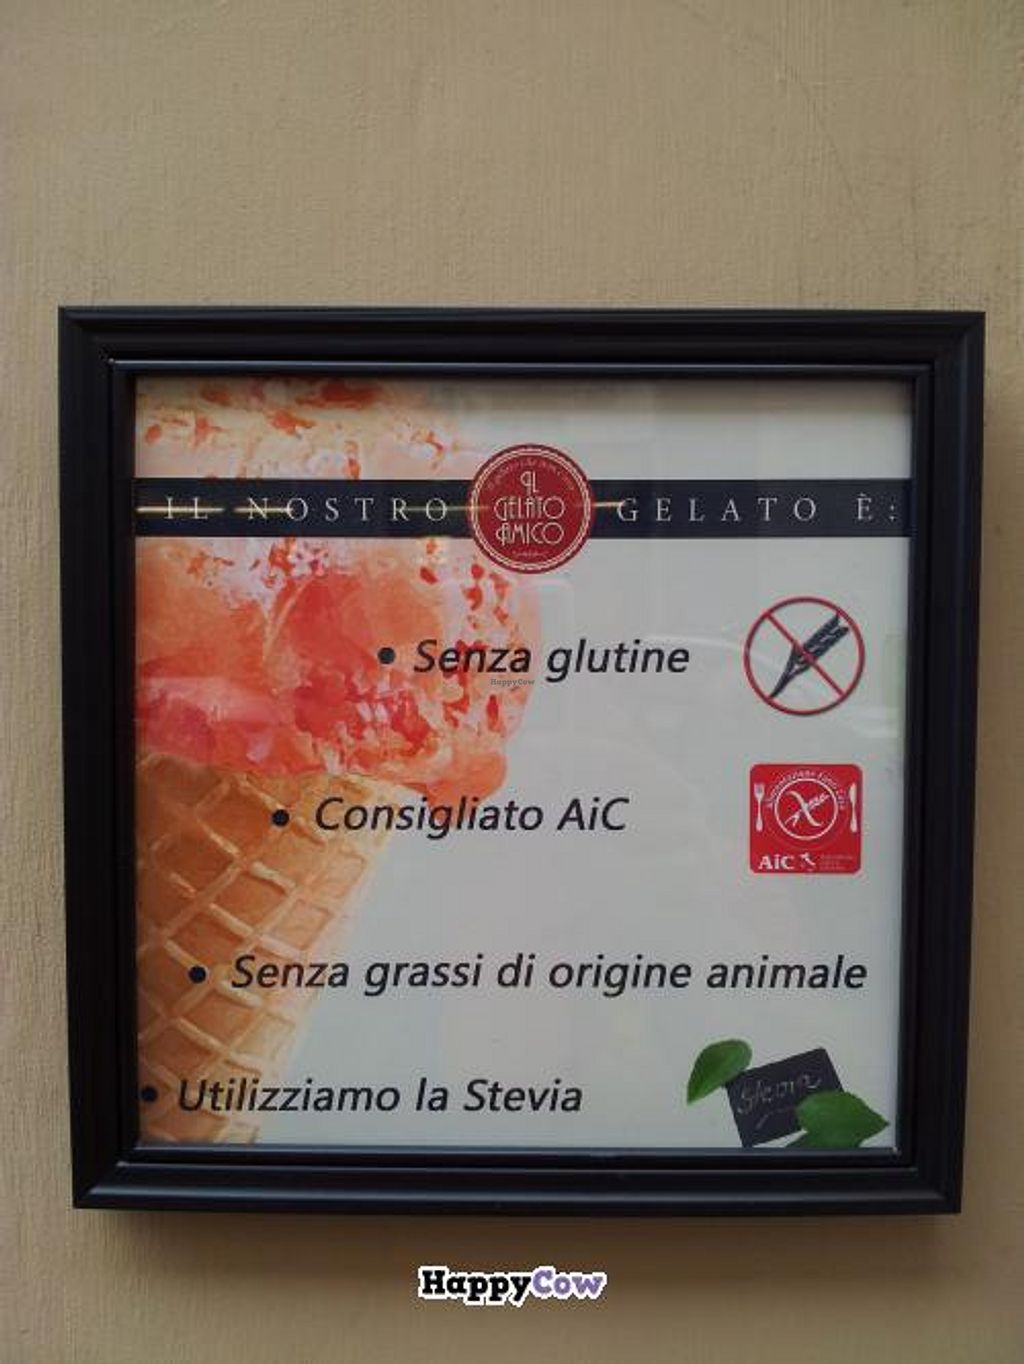 "Photo of Il Gelato Amico - San Massimo  by <a href=""/members/profile/L_Almo_Clelarco"">L_Almo_Clelarco</a> <br/>Gelato for all! <br/> September 11, 2013  - <a href='/contact/abuse/image/39450/54746'>Report</a>"